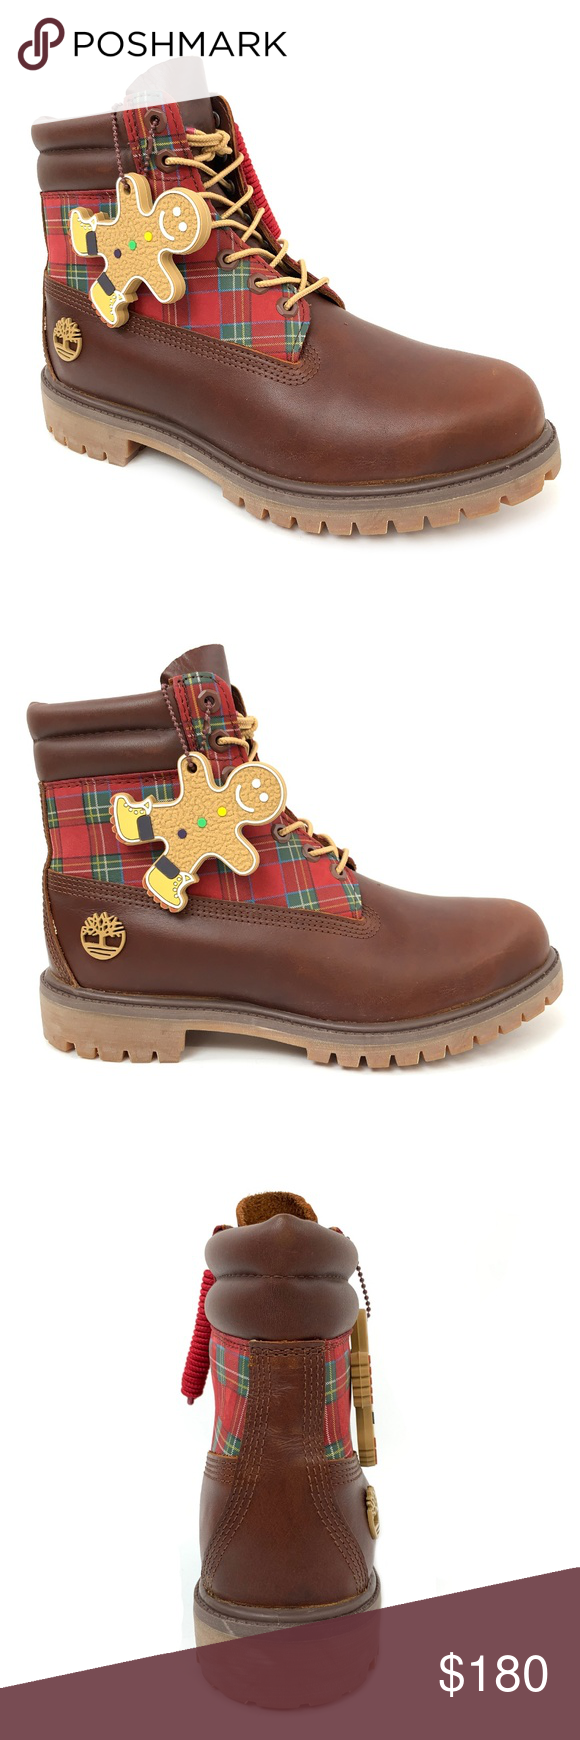 Timberland Men's 6 Inch Boots | Boots